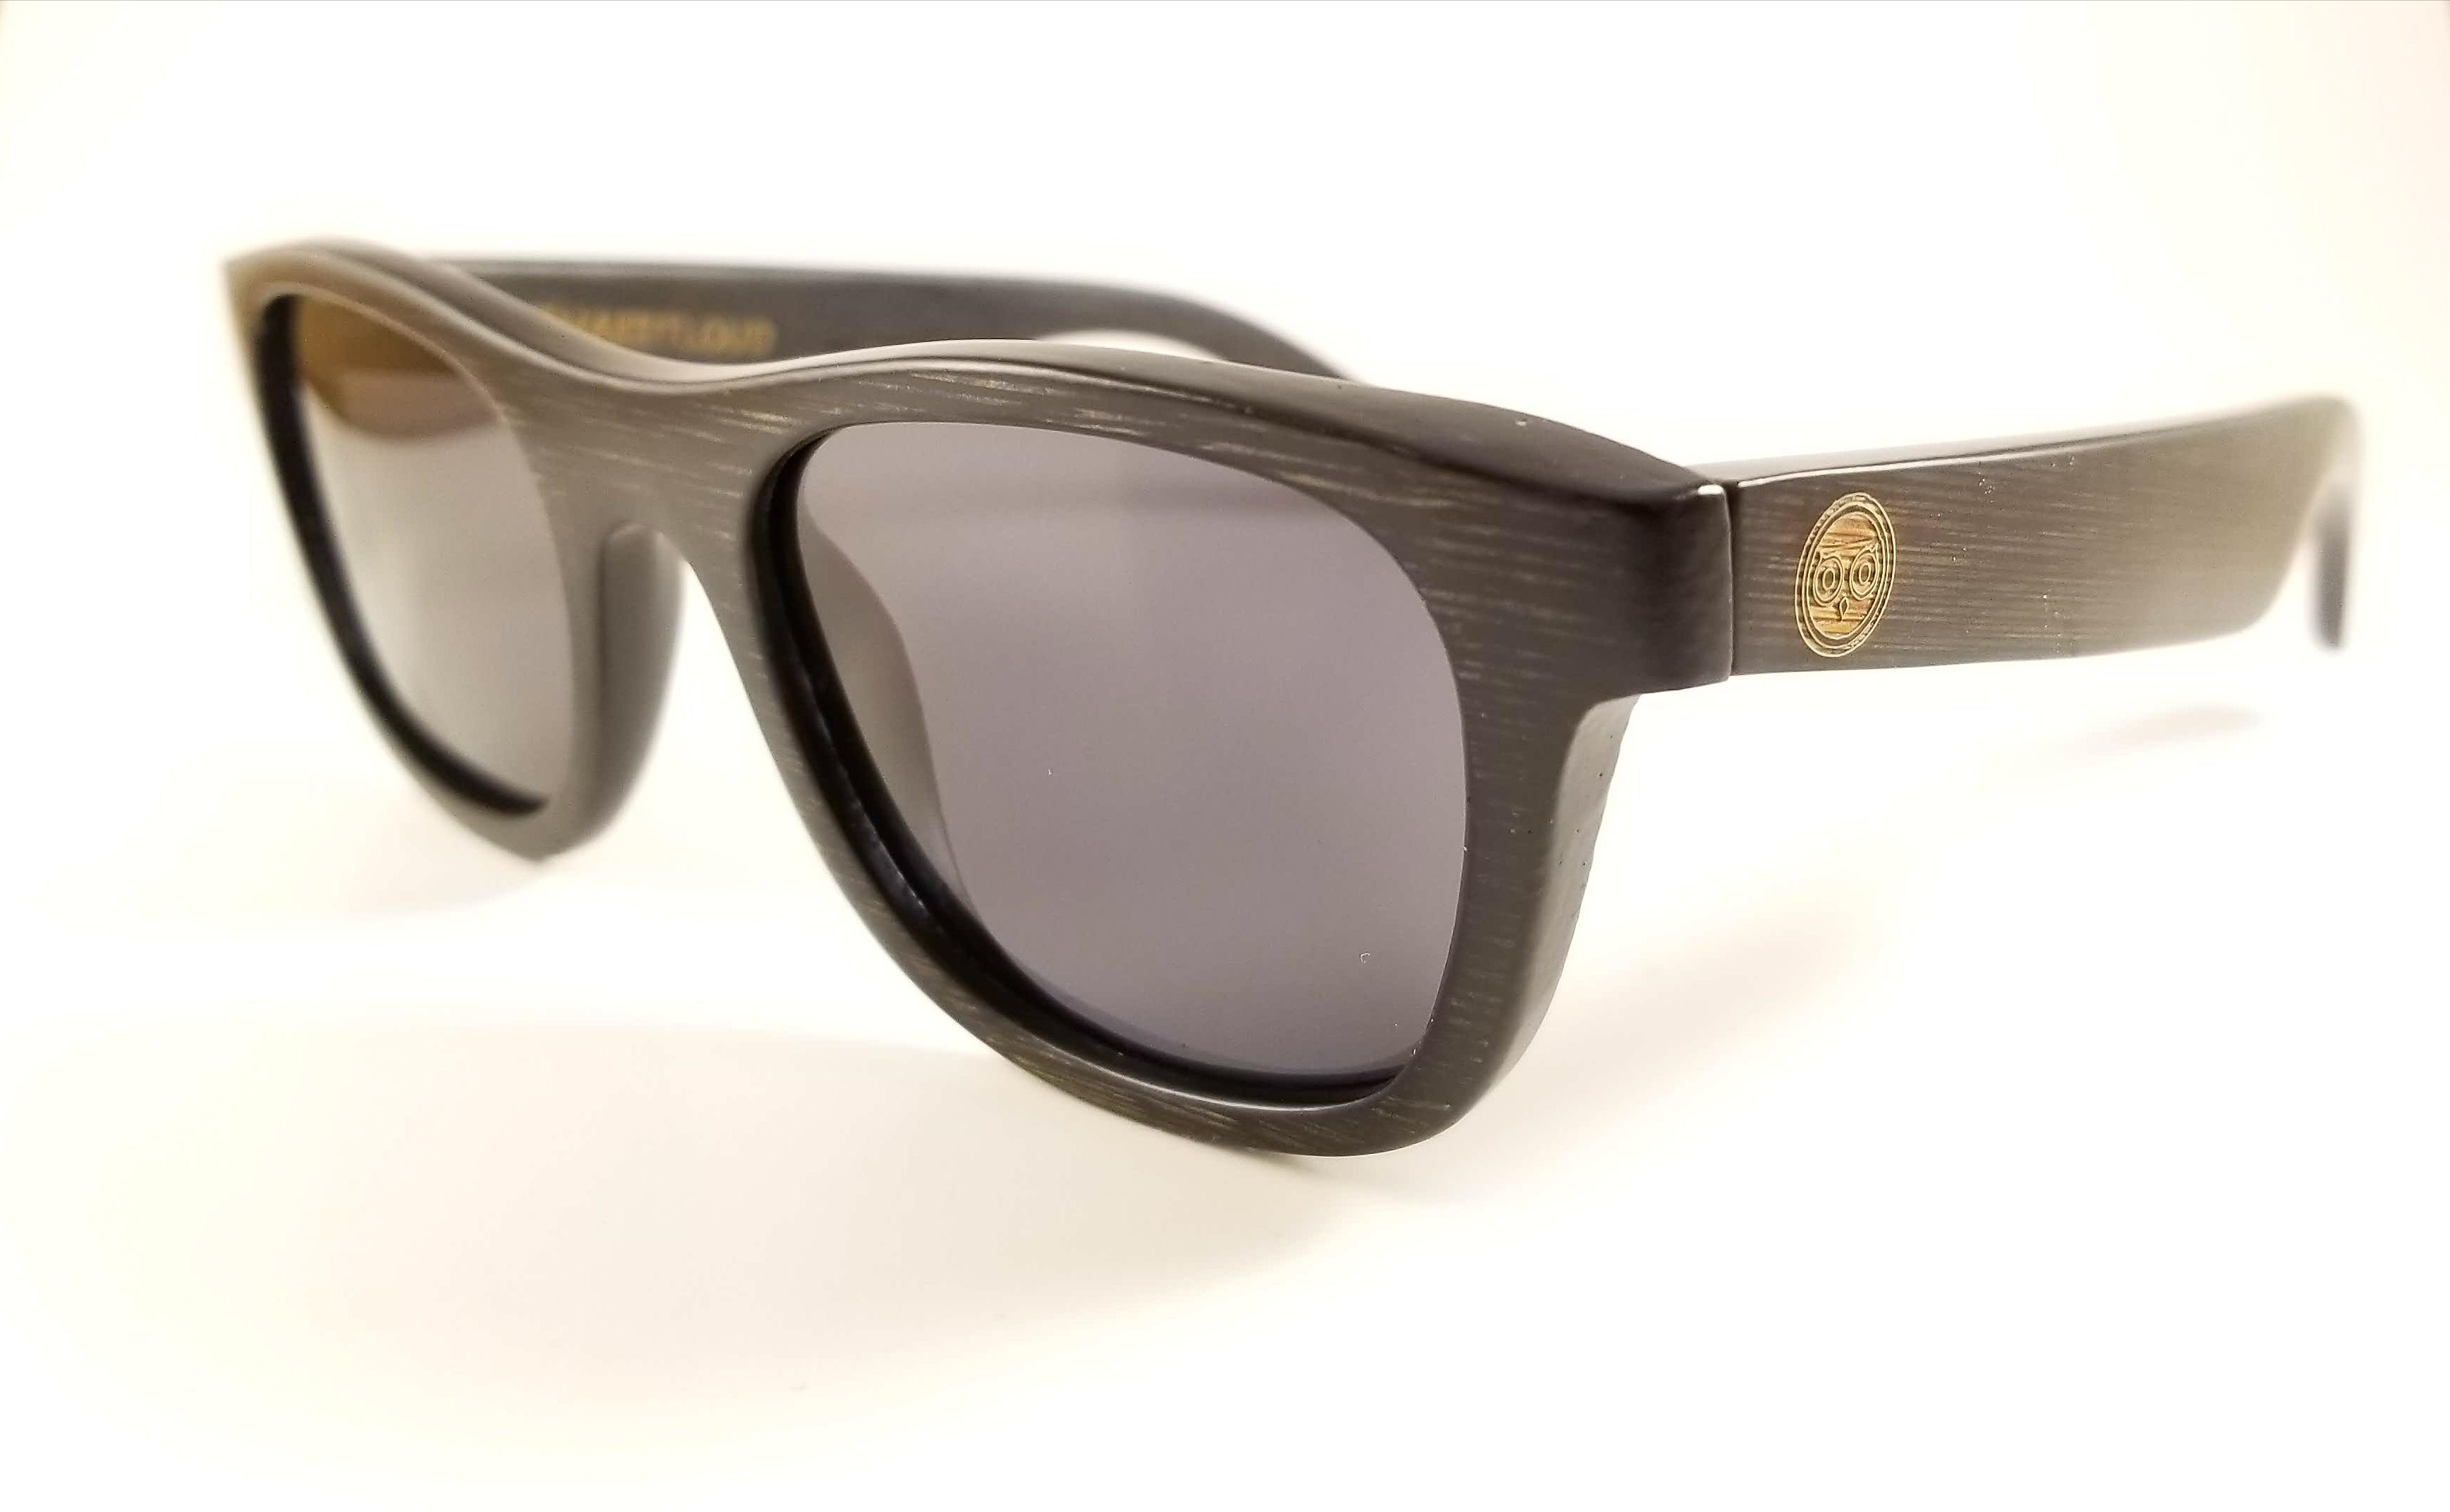 Black Bamboo Wayfarer Sunglasses with a Black Polarized Lens.